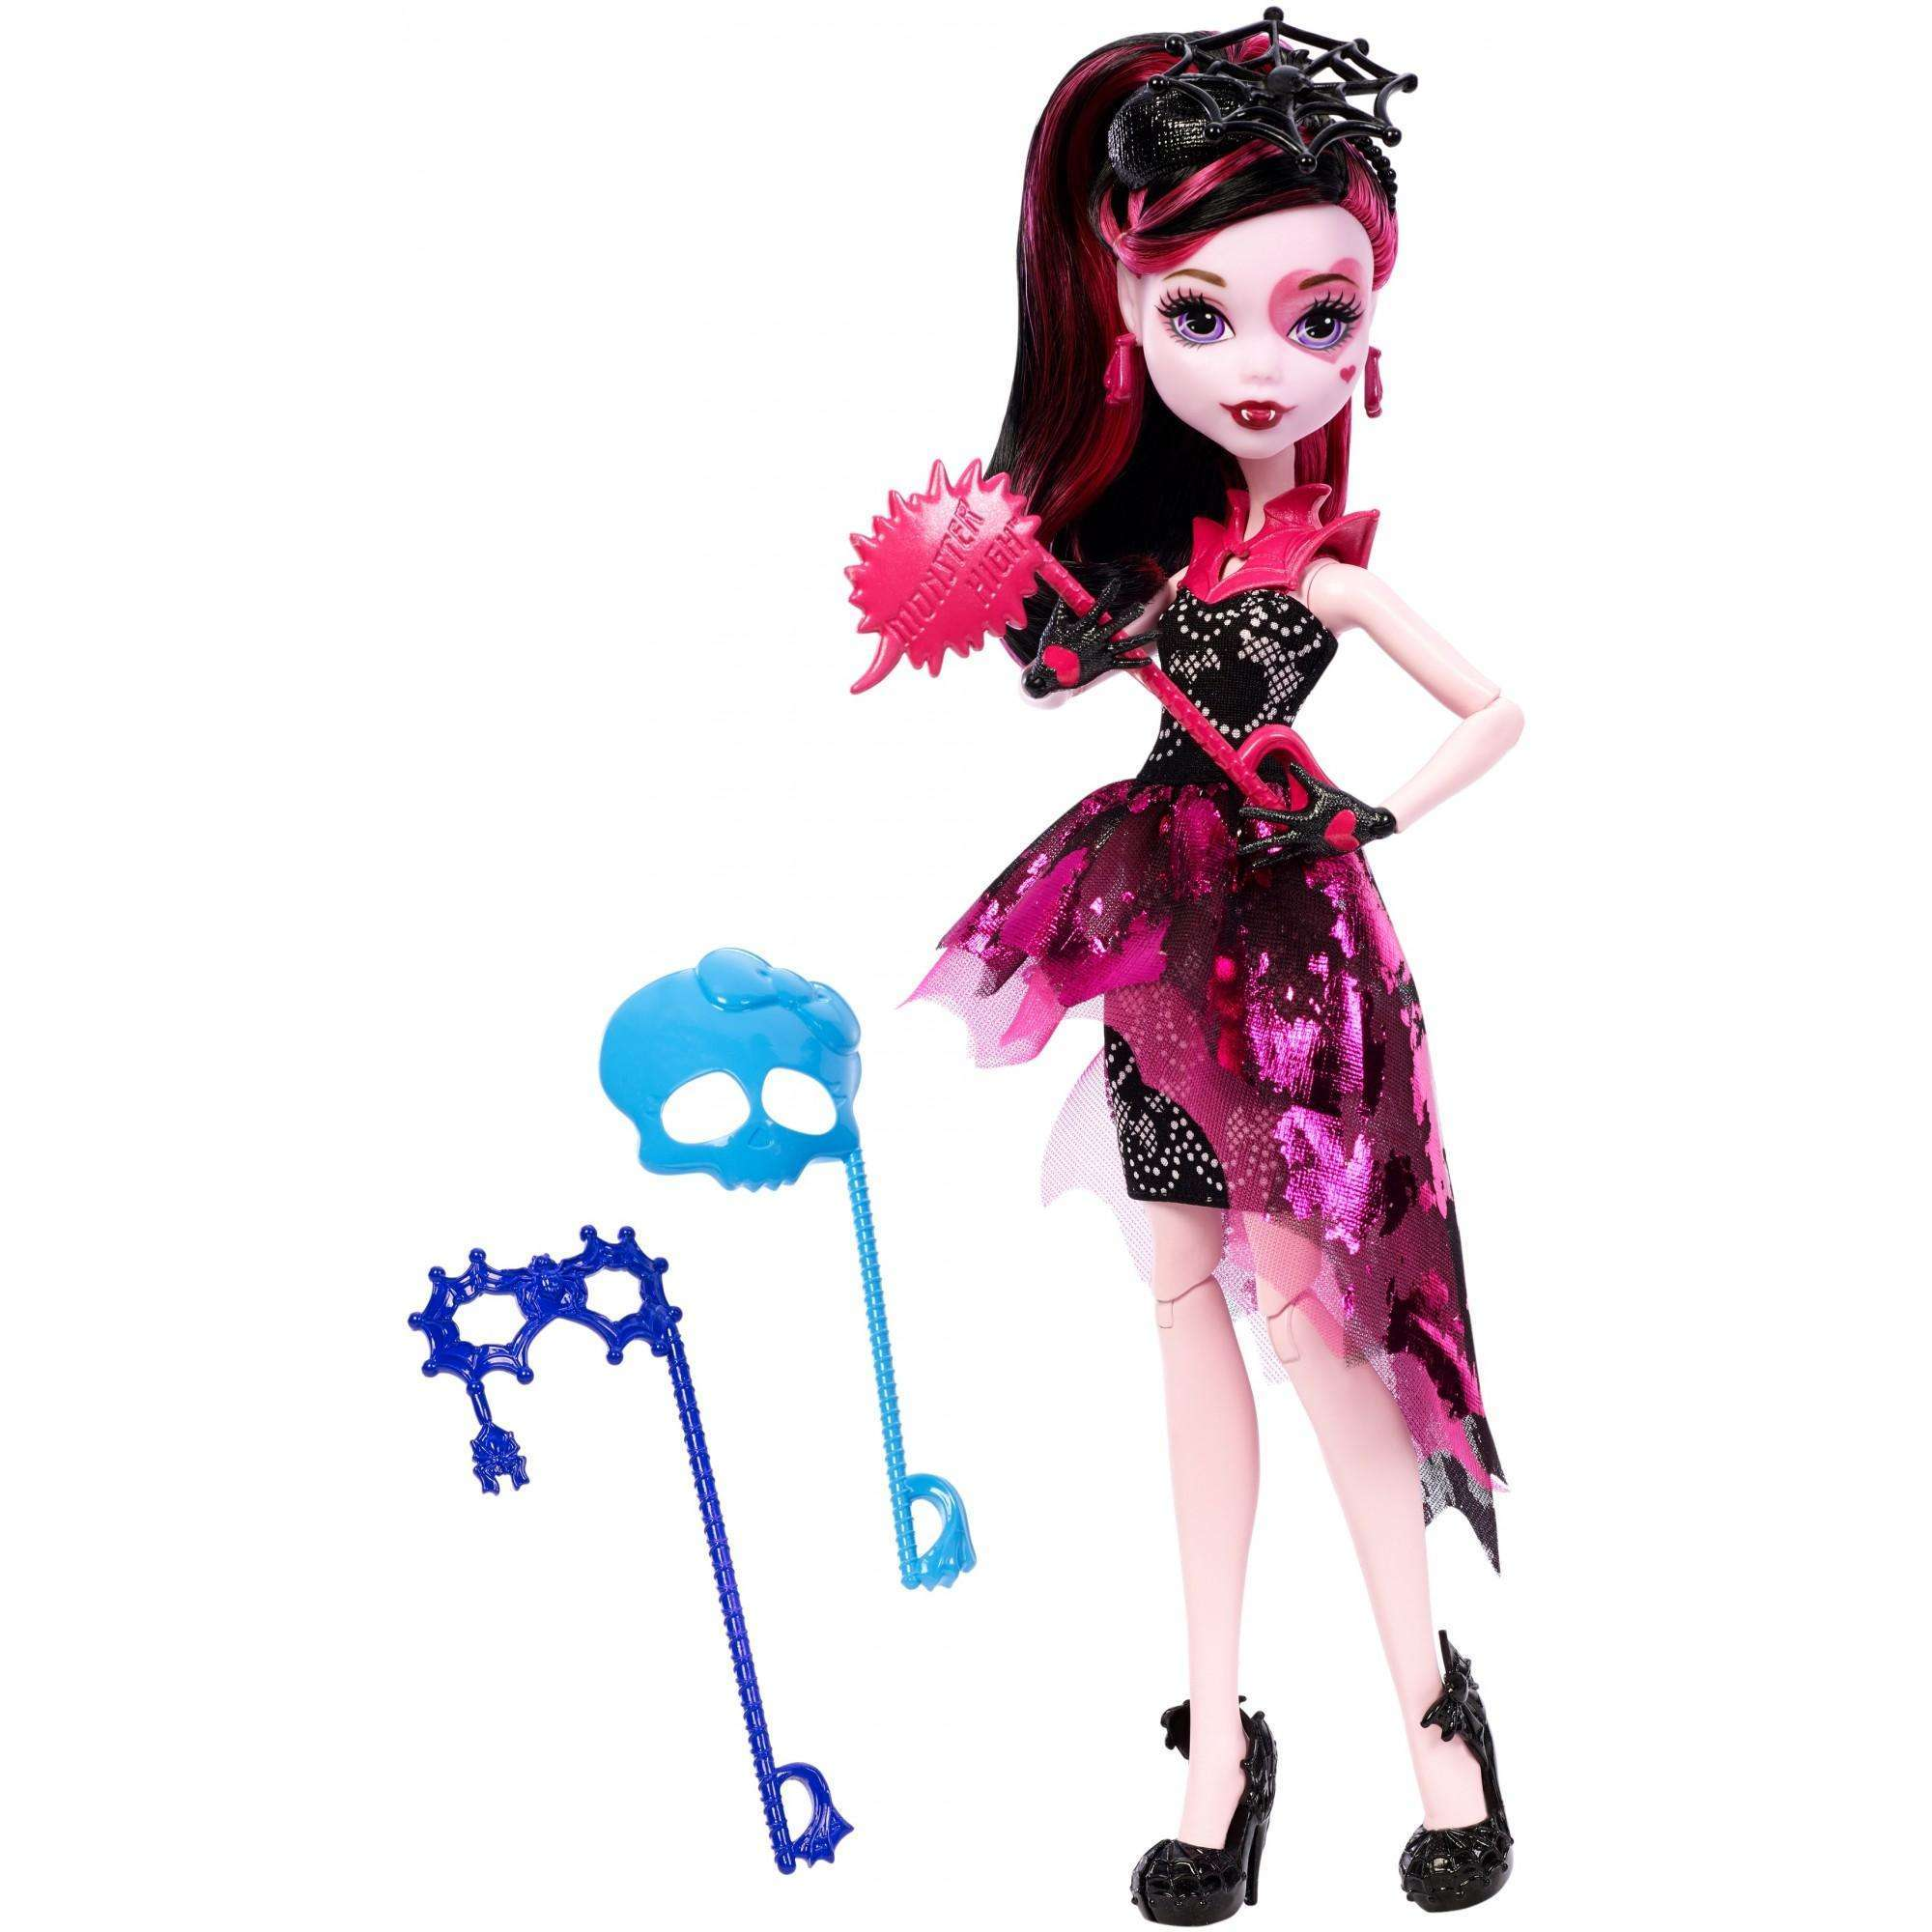 Monster High Welcome to Monster High Dance the Fright Away Draculaura Doll